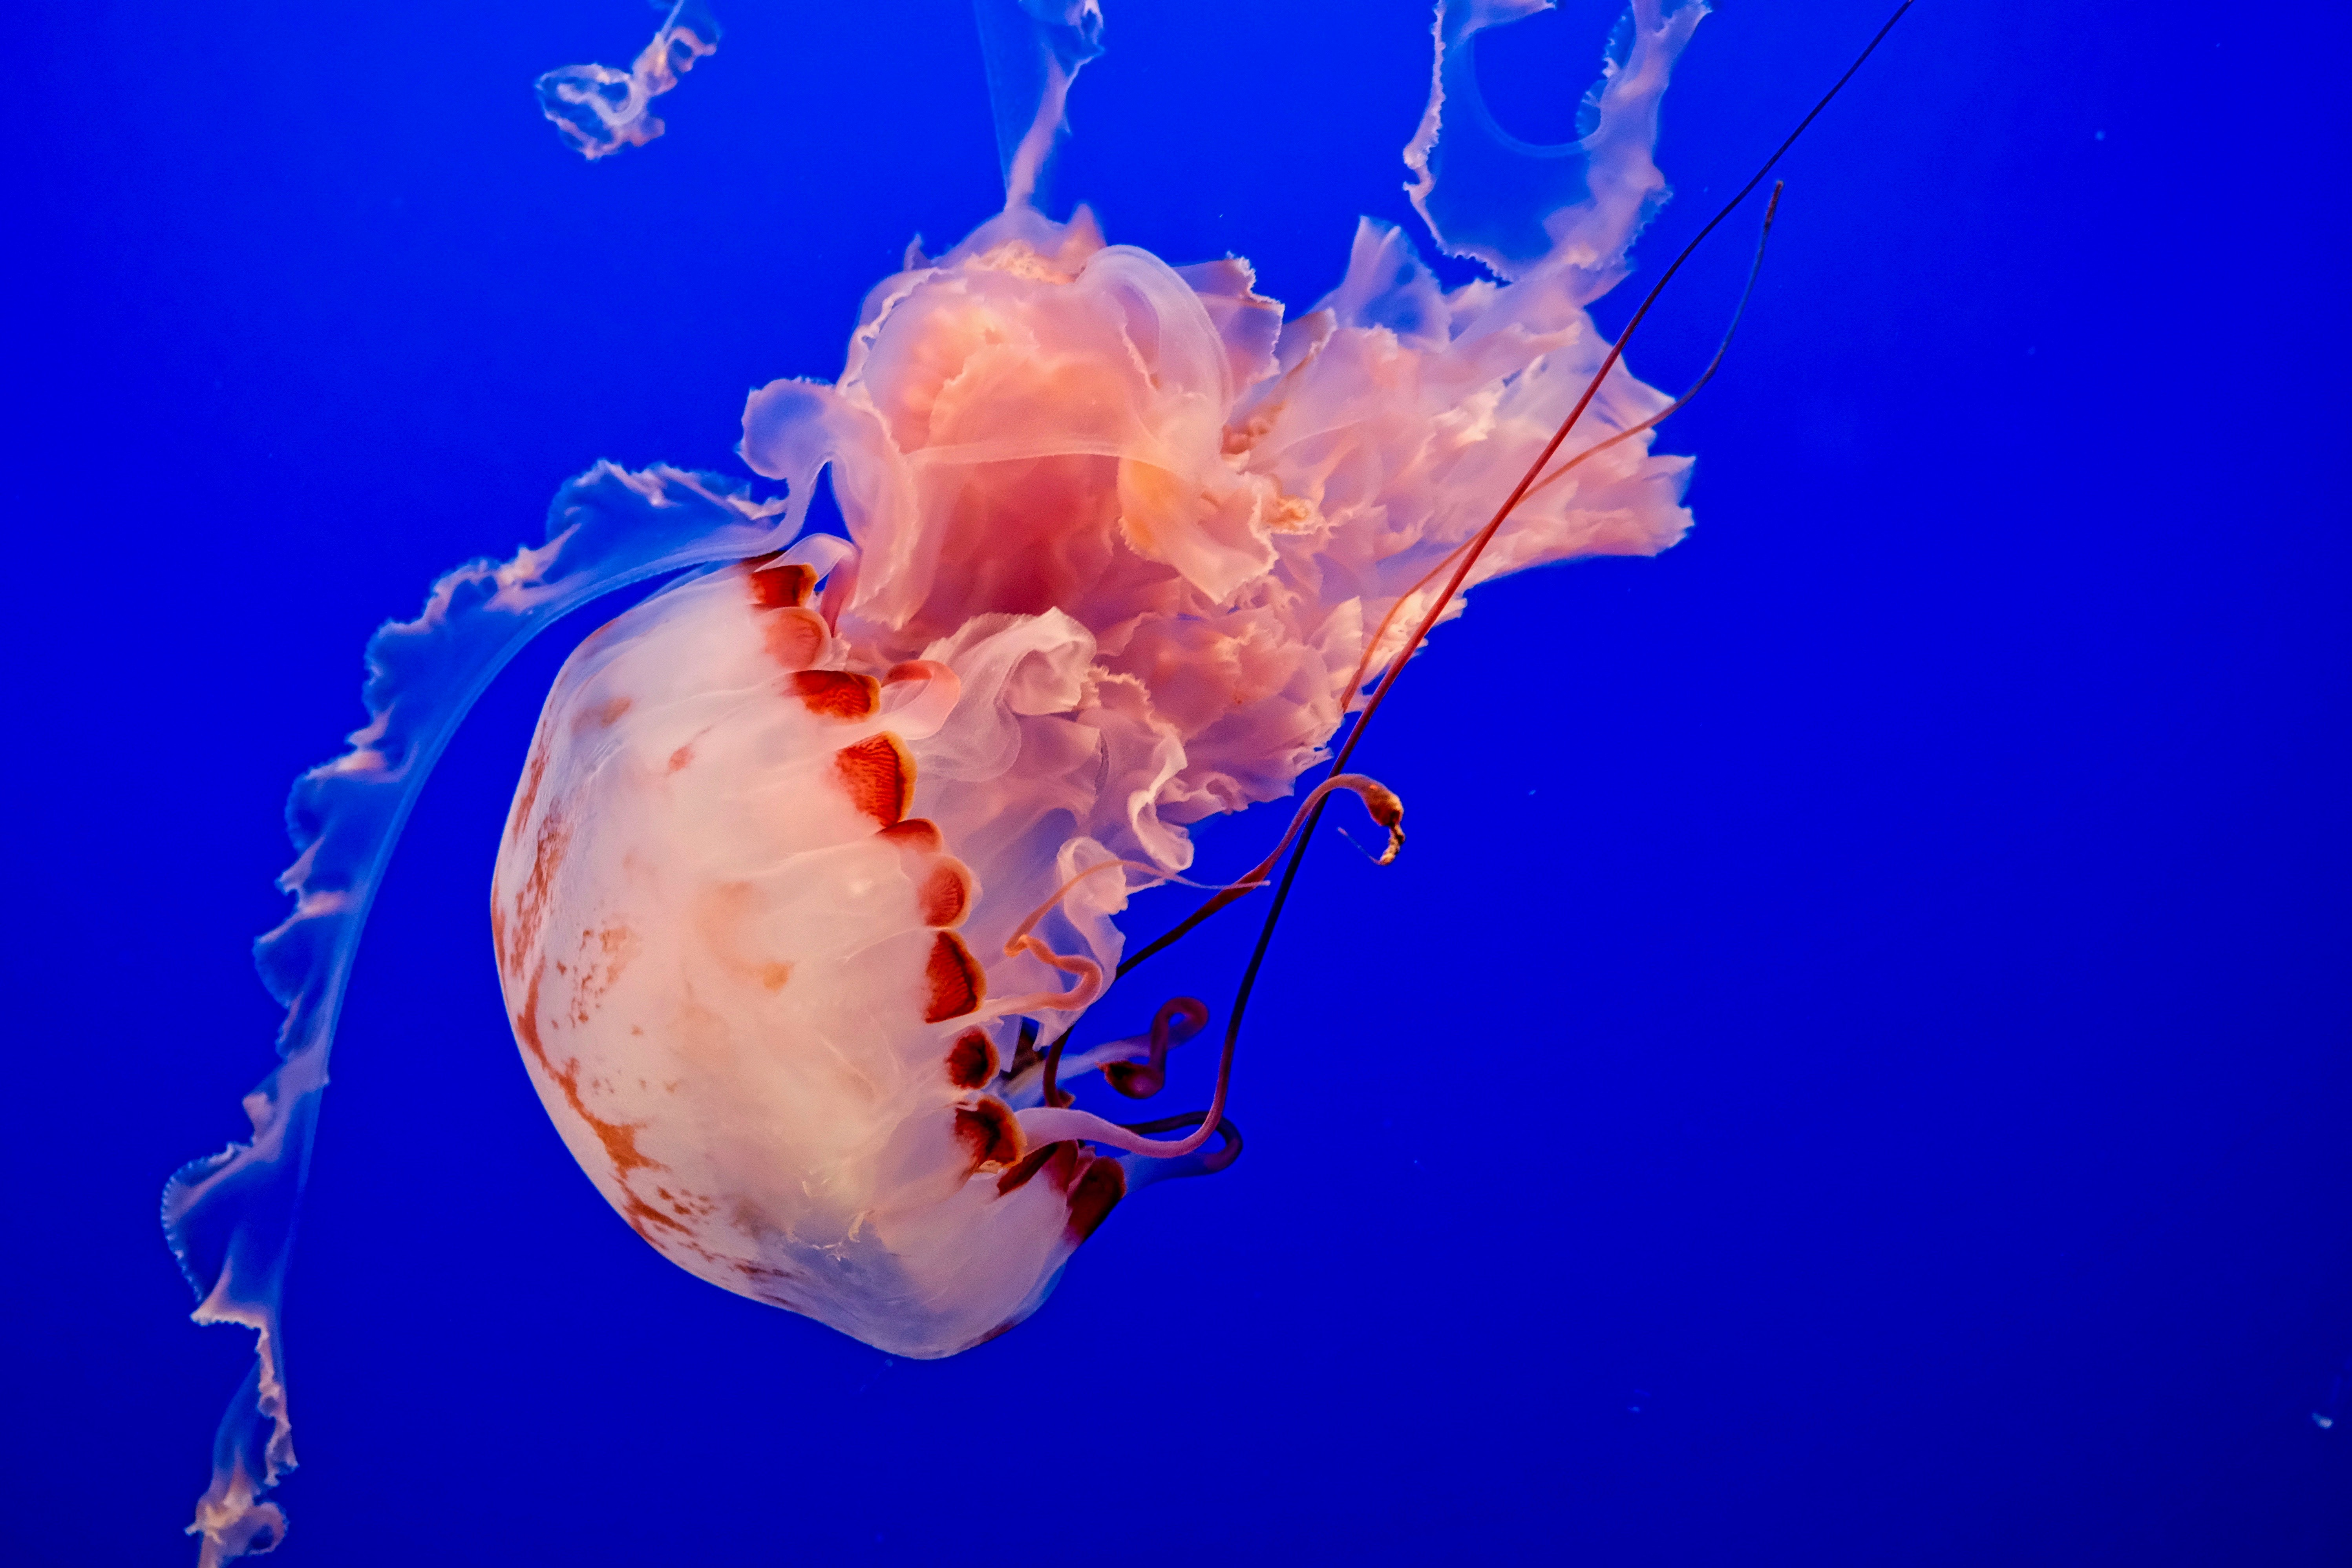 83177 download wallpaper Animals, Jellyfish, Underwater World, Tentacles, Ocean, To Swim, Swim screensavers and pictures for free